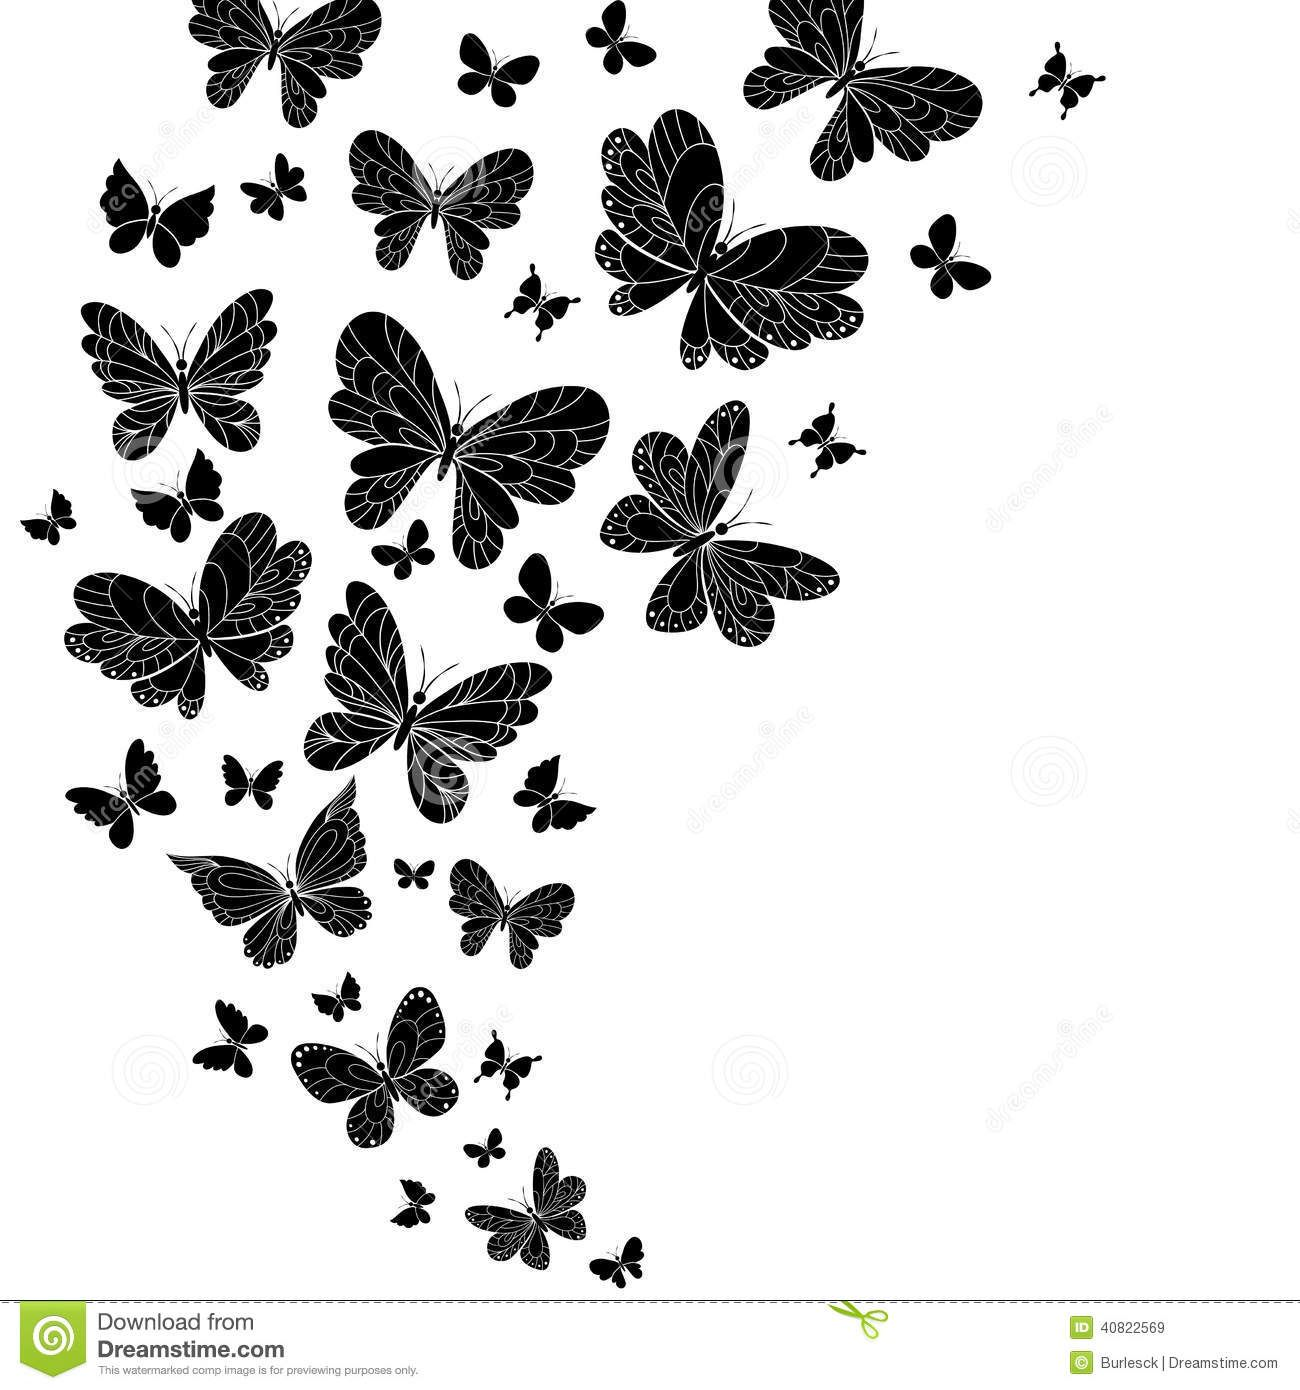 Flying Butterfly Silhouette Google Search Butterflies Vector Fairy Silhouette Bird Silhouette